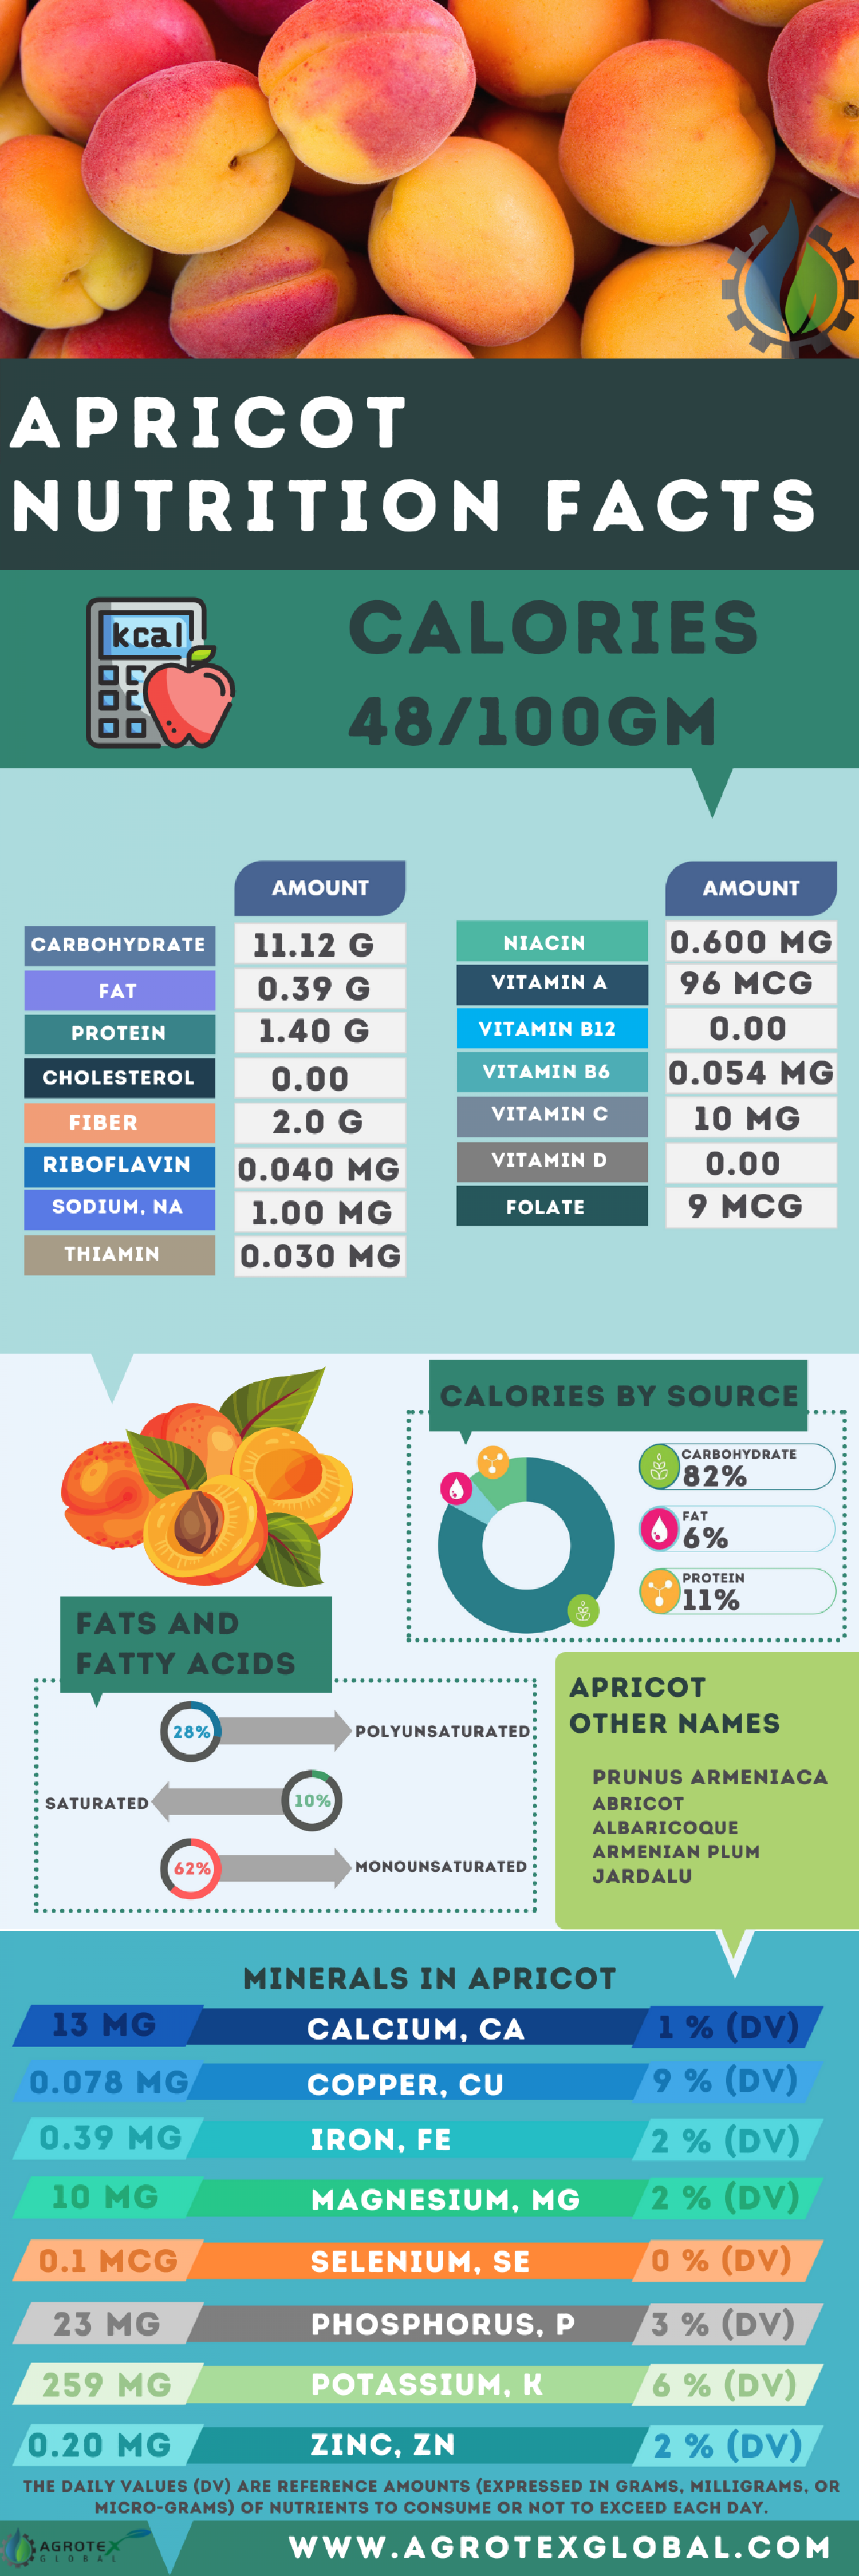 Apricot Fruit nutrition facts Infographic